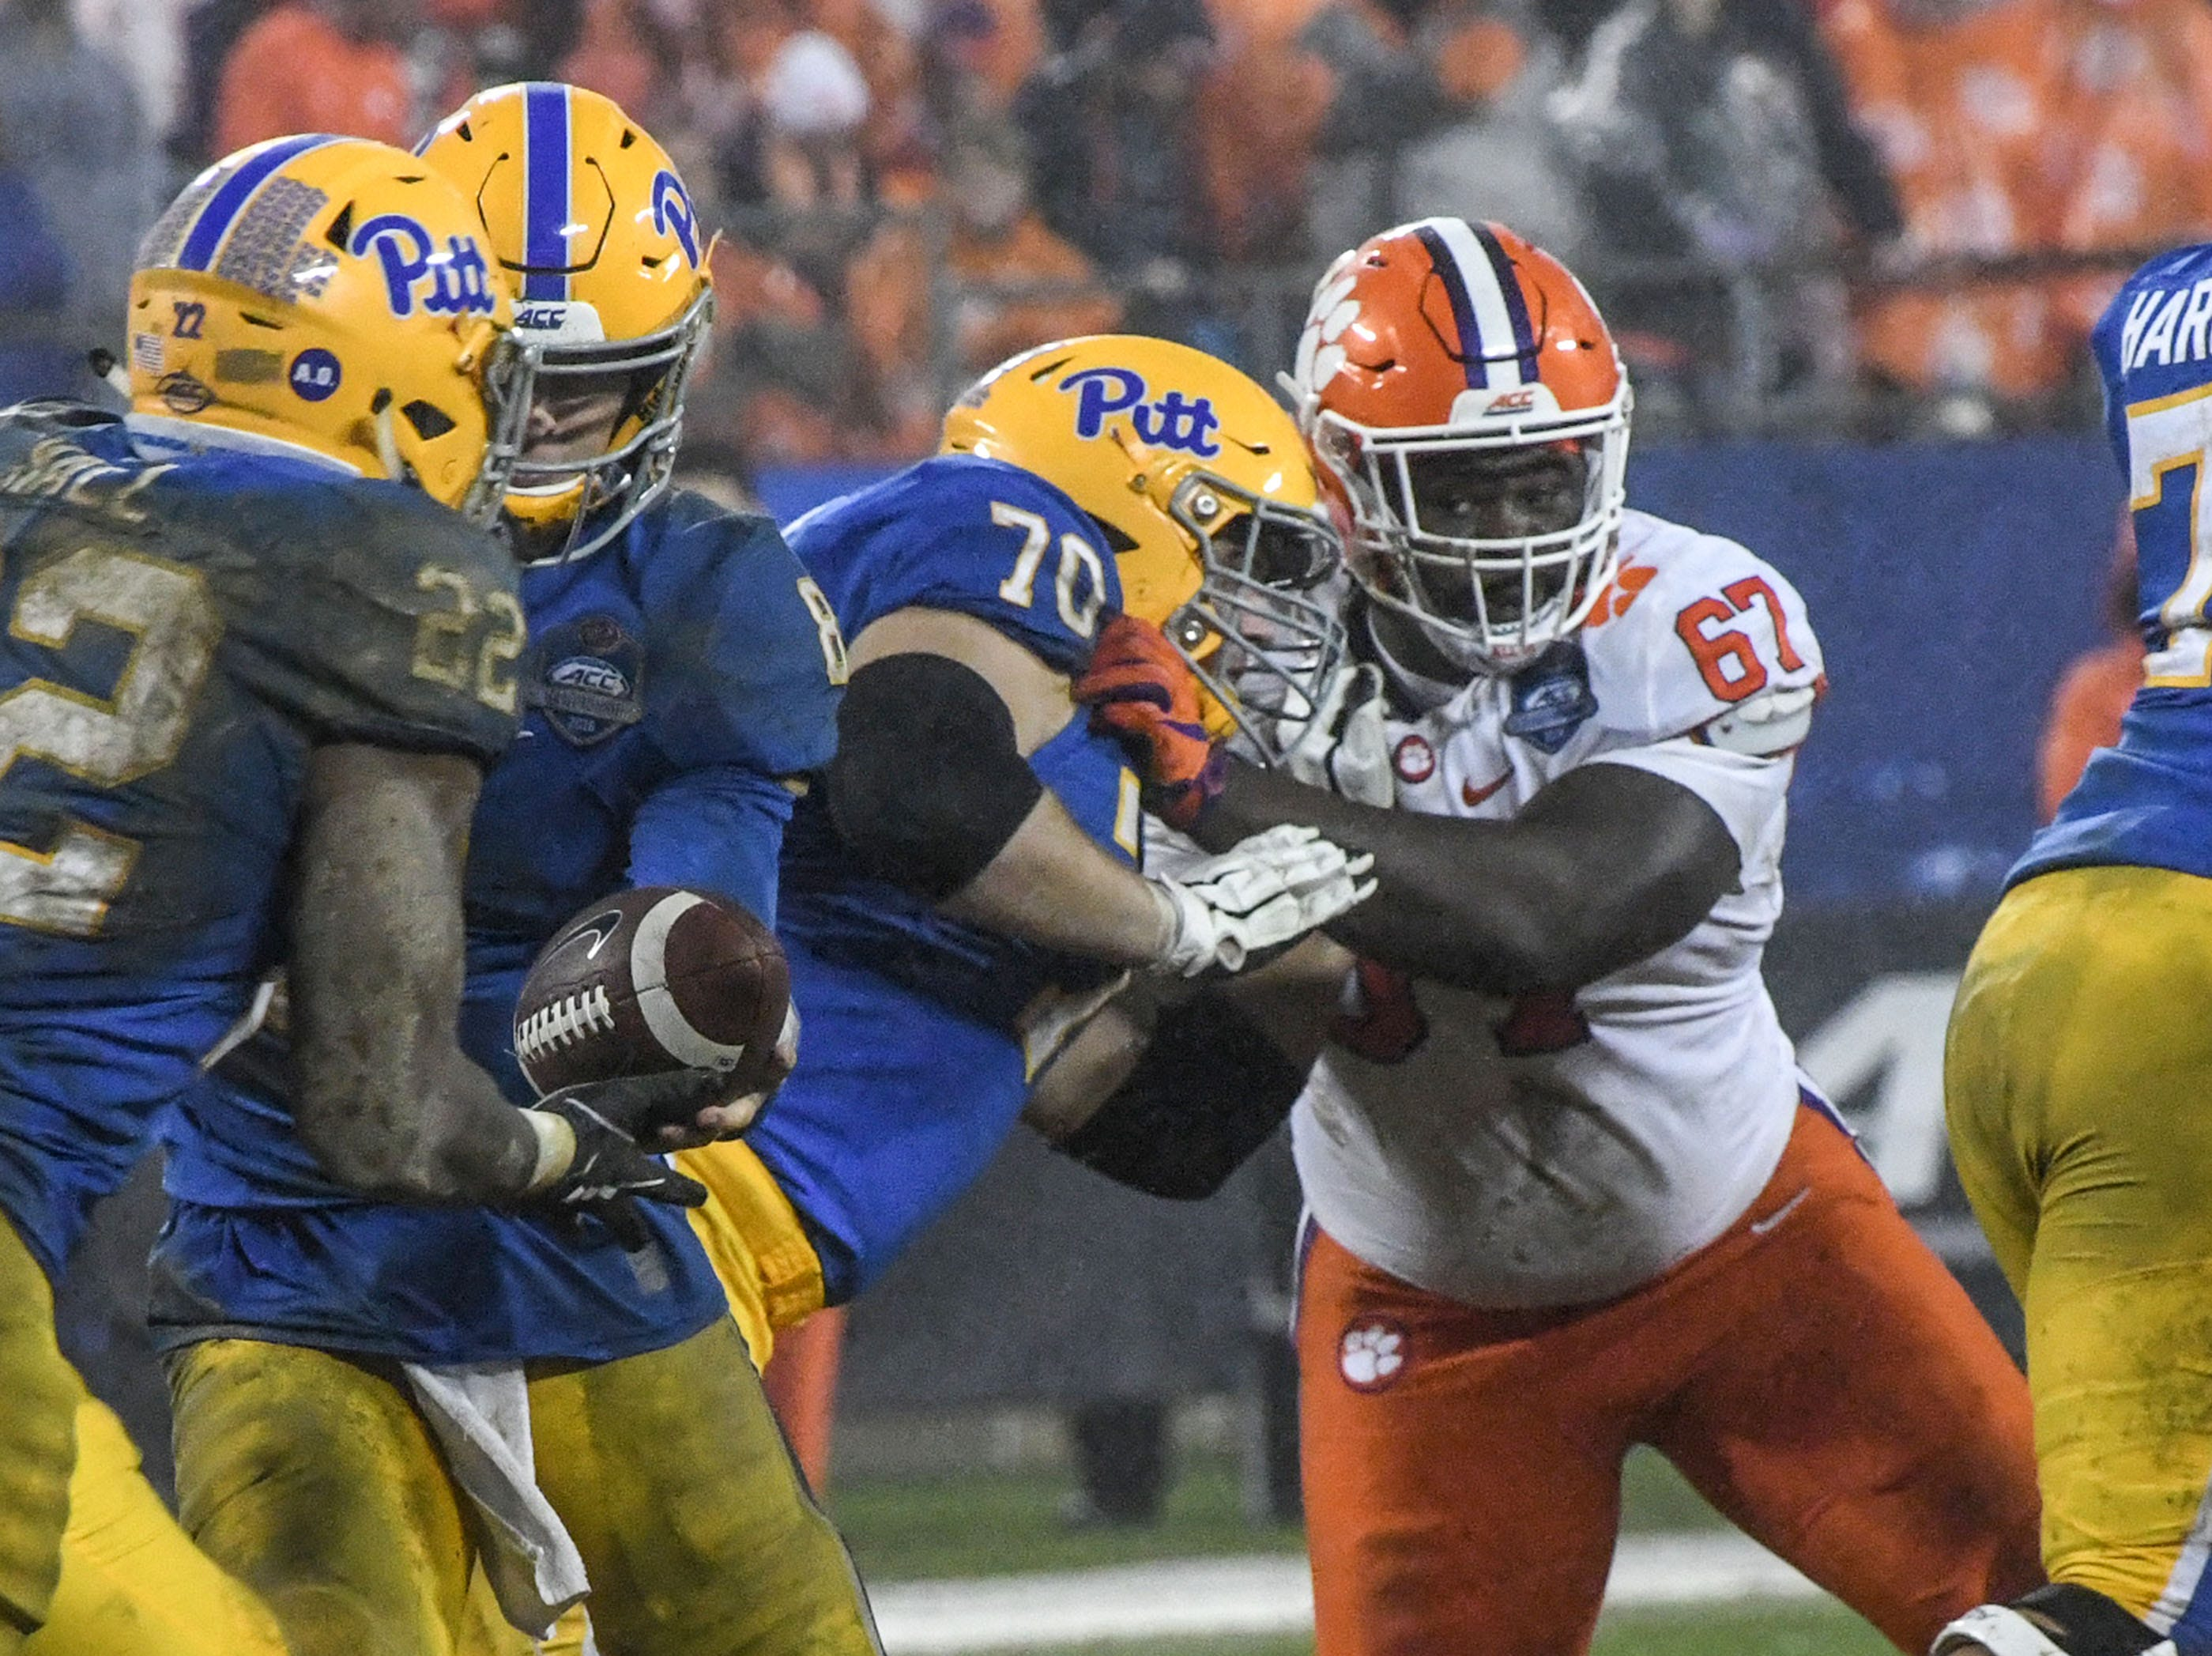 Clemson defensive lineman Albert Huggins (67) eyes Pittsburgh running back Darrin Hall during the fourth quarter in Memorial Stadium on Saturday, November 3, 2018.